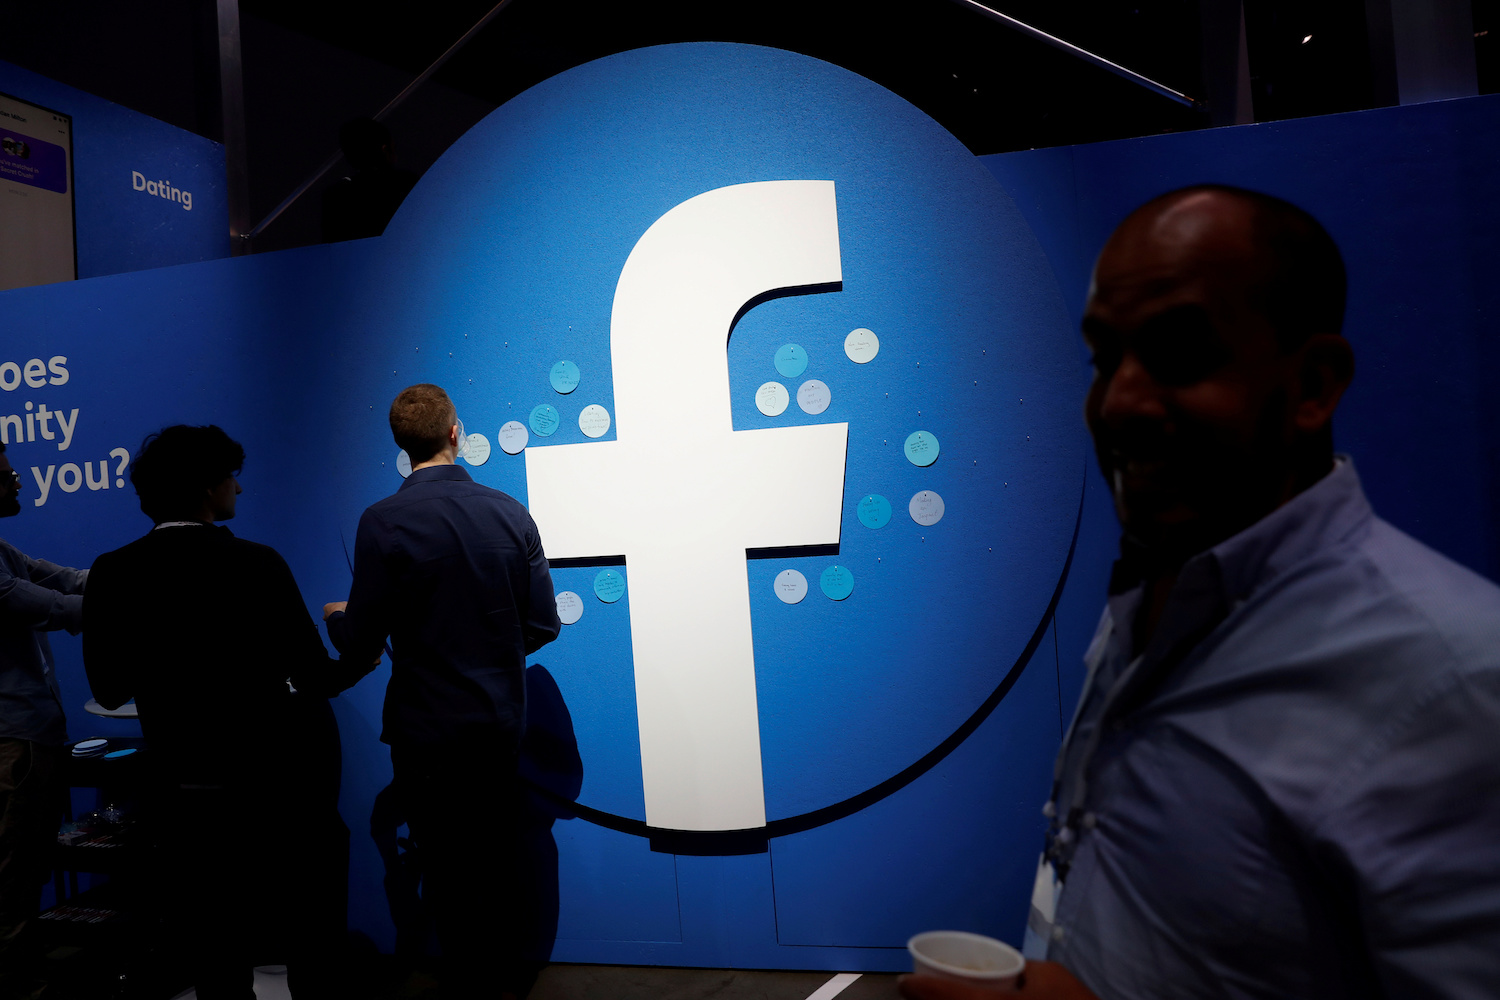 Attendees walk past a Facebook logo during a developers' conference held by the company in San Jose, California in April. (Reuters Photo)